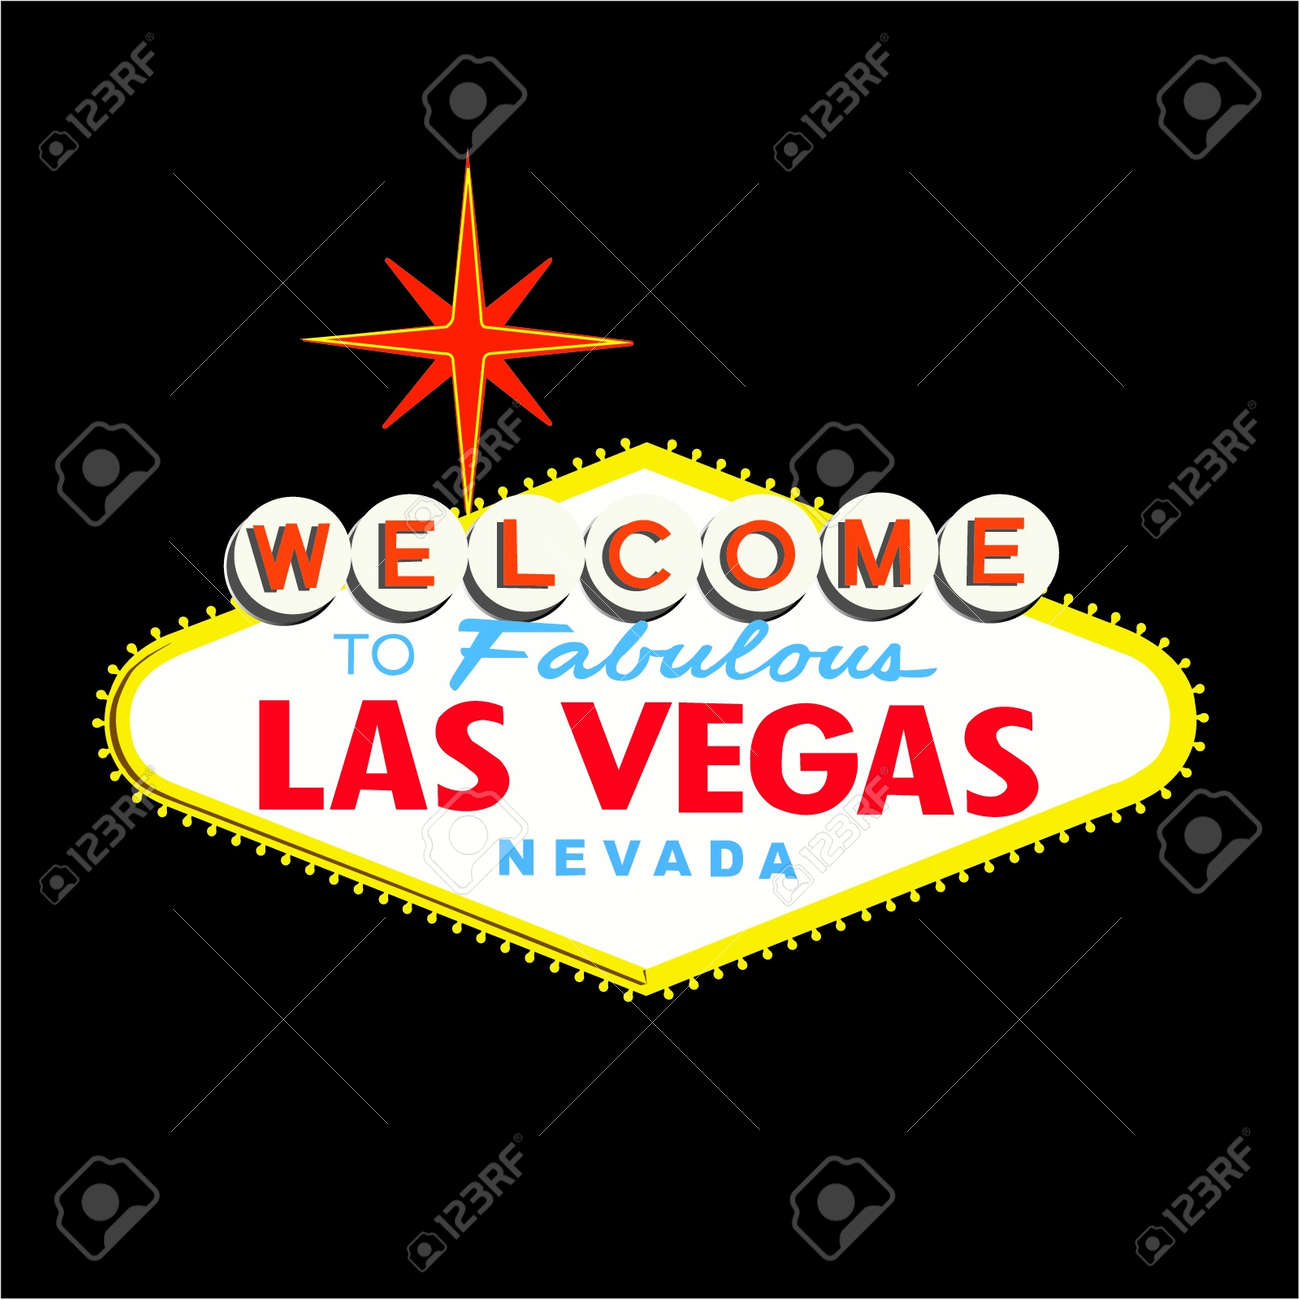 6,036 Las Vegas Cliparts, Stock Vector And Royalty Free Las Vegas ...